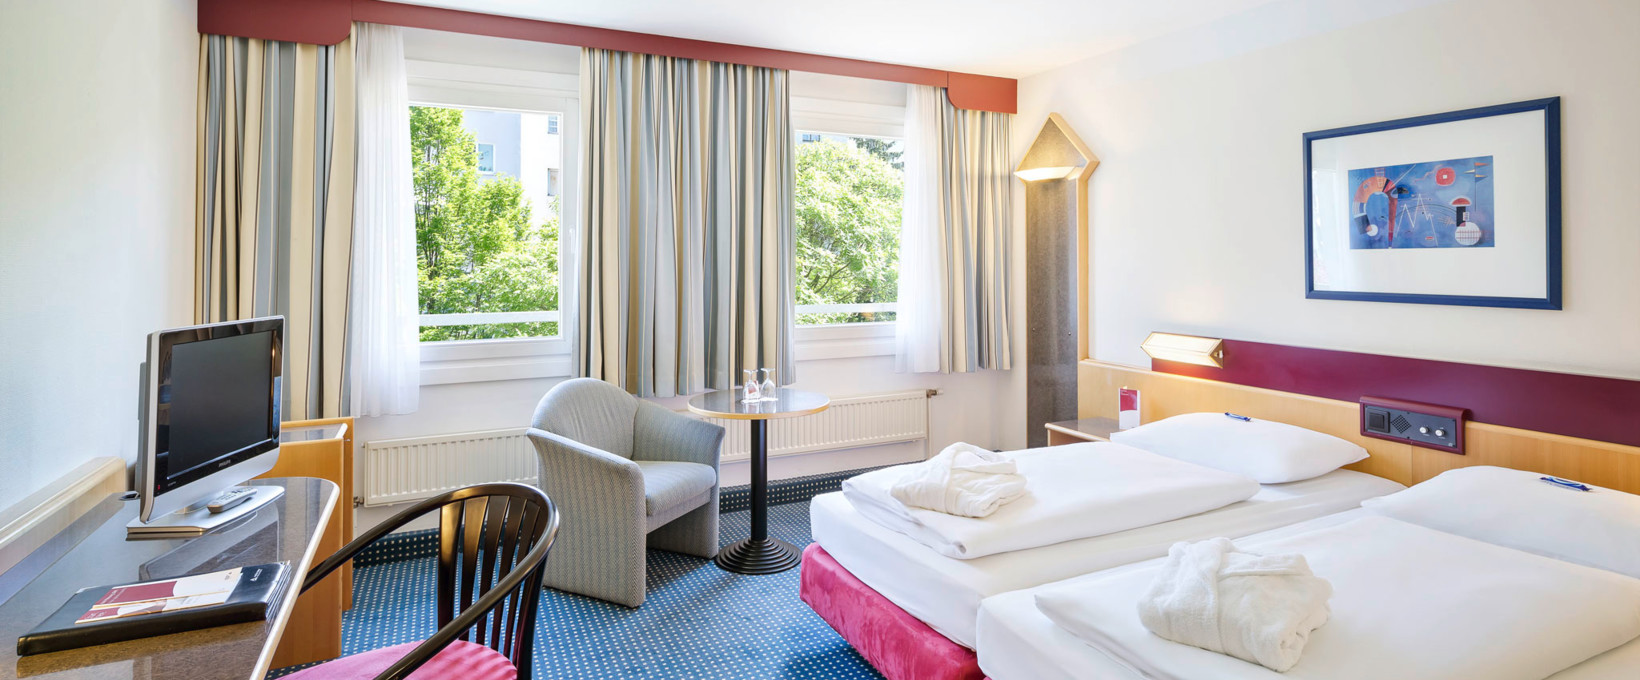 Executive Room with living and sleeping area | Hotel Lassalle in Vienna